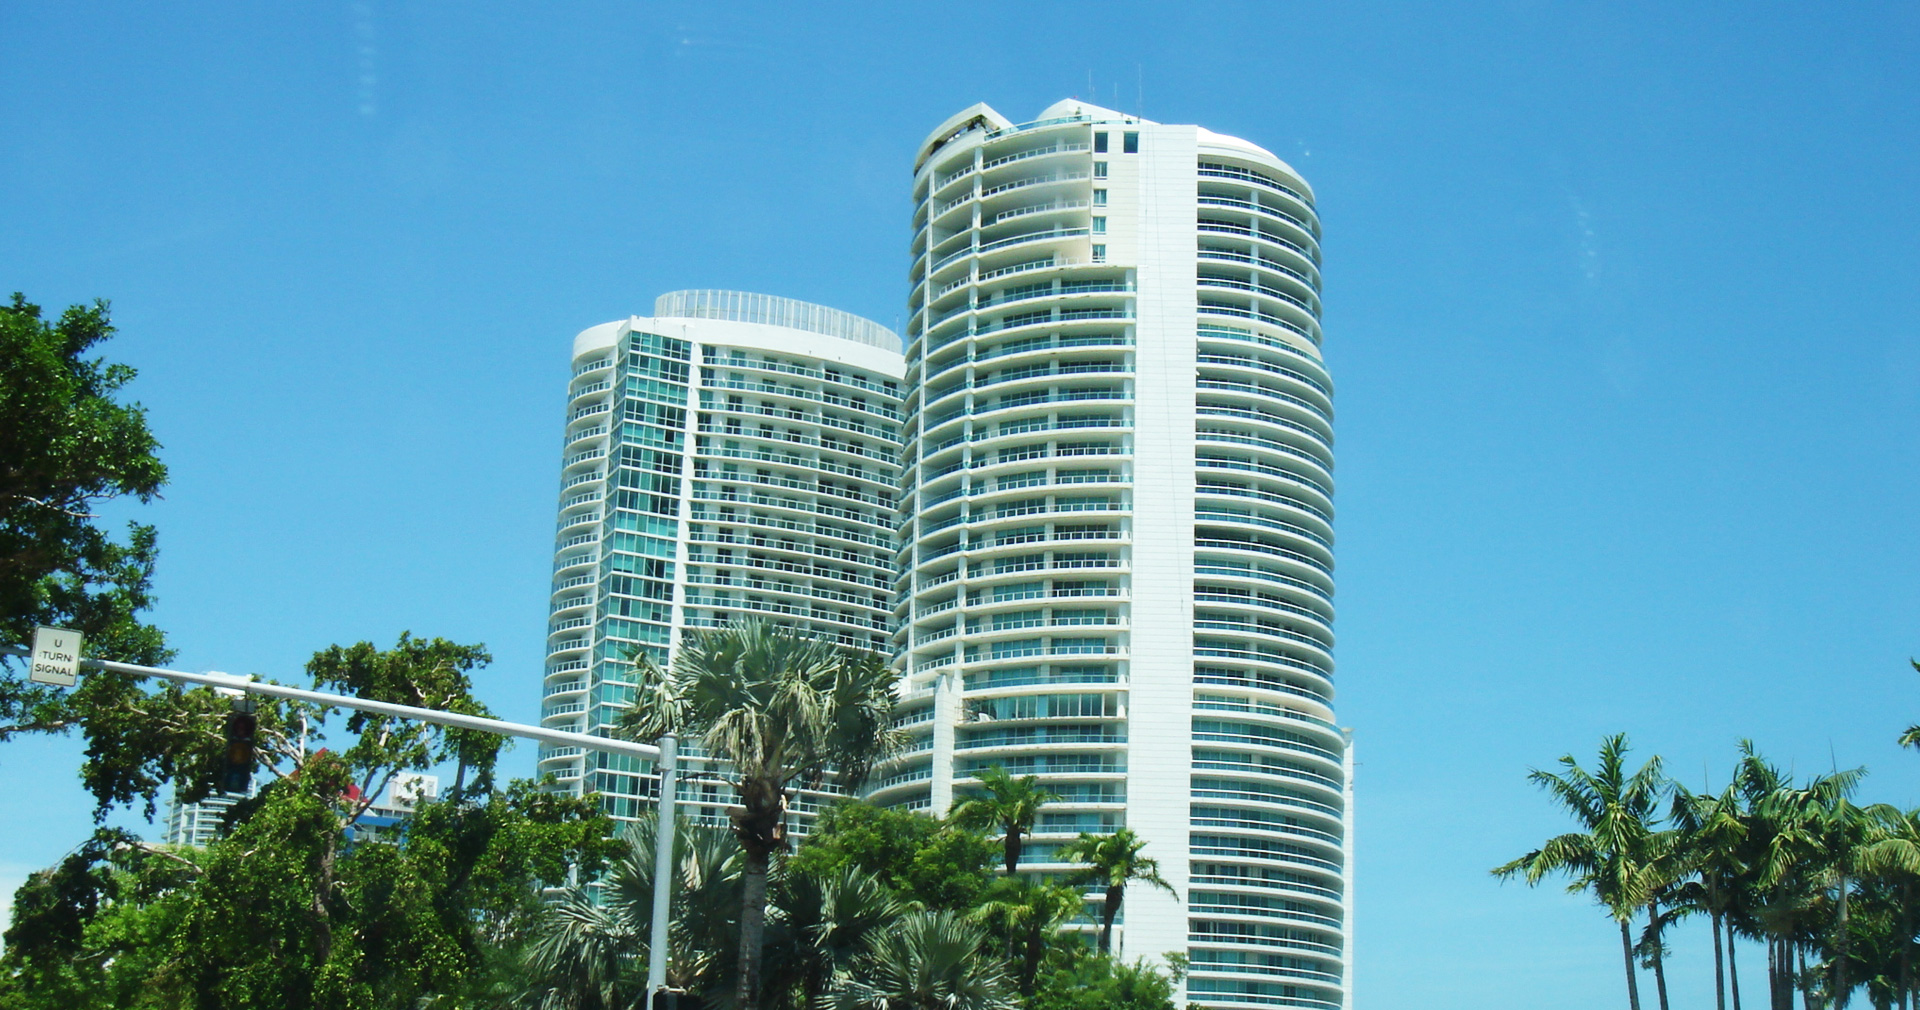 Bristol Tower Brickell